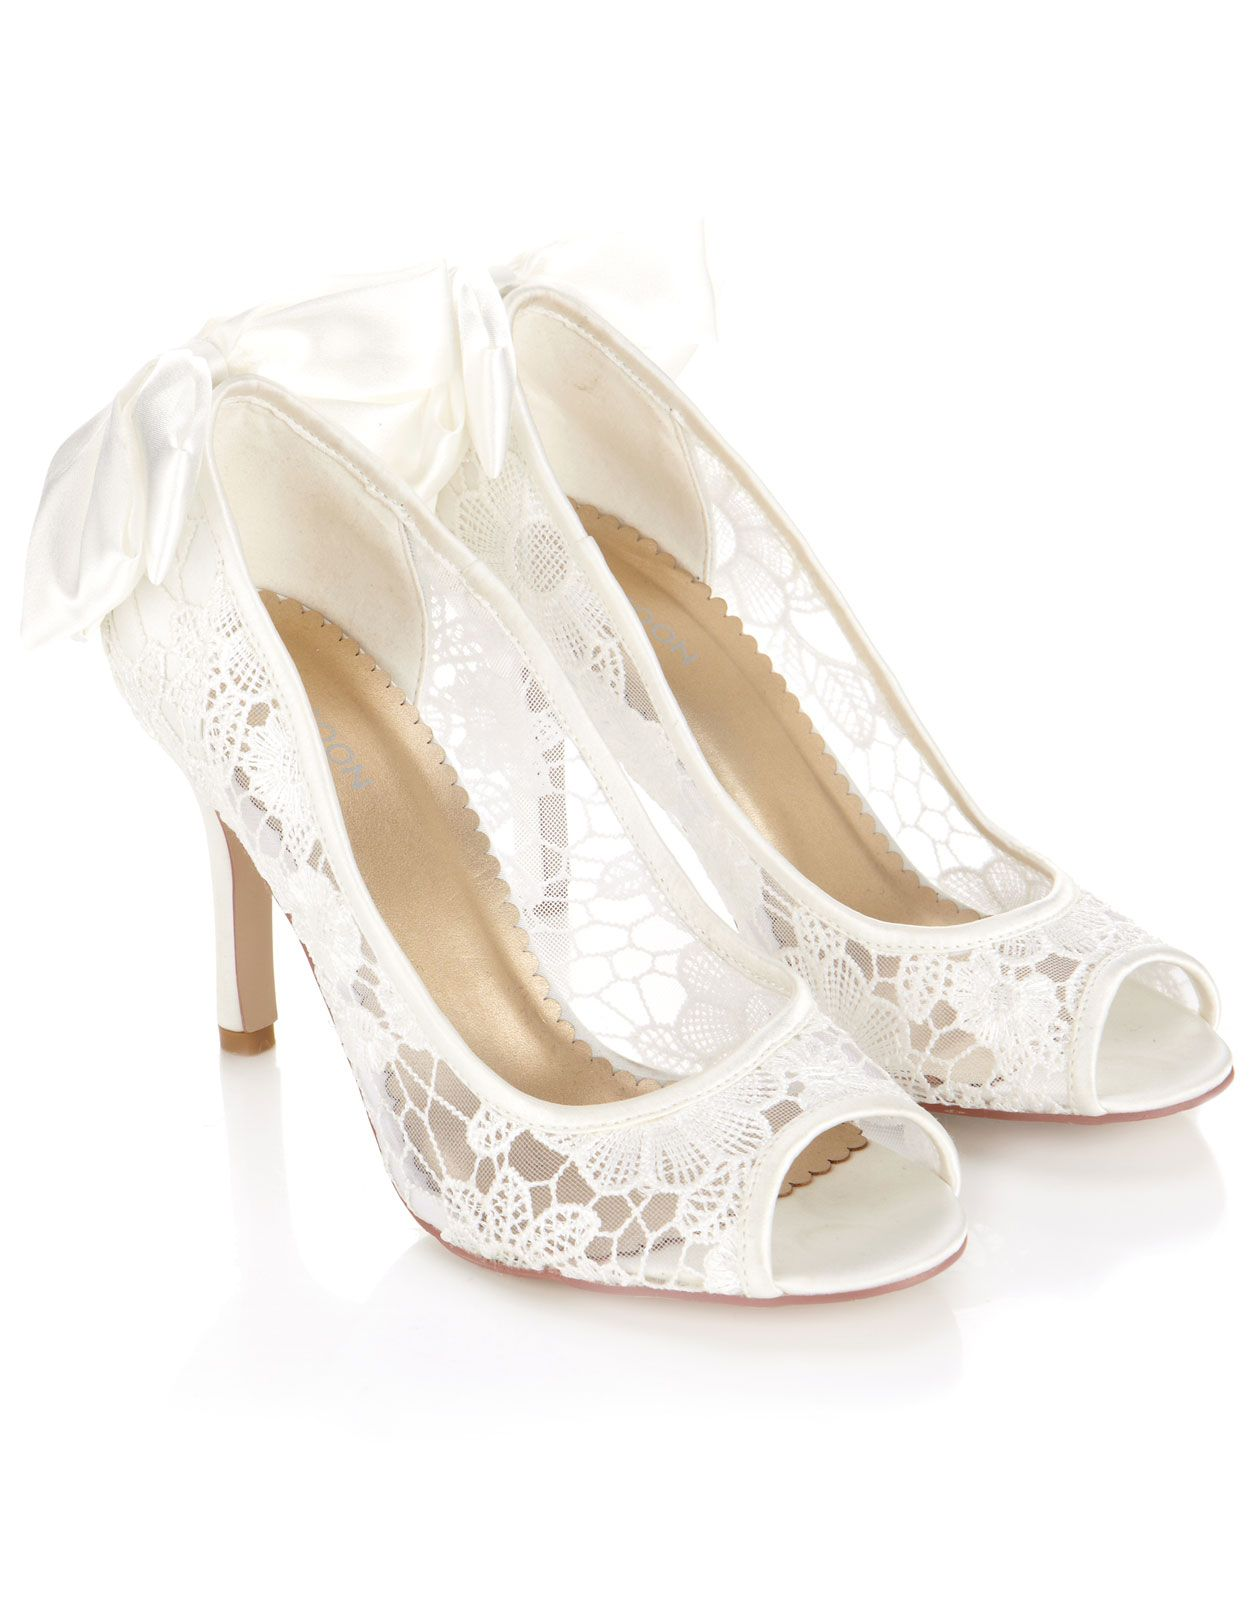 Lilliana Vintage Bow Ptoe In Ivory From Monsoon I Have Just Bought These Soooooo Wedding Shoesvintage Style Weddingswedding Shoes Heelsbridal